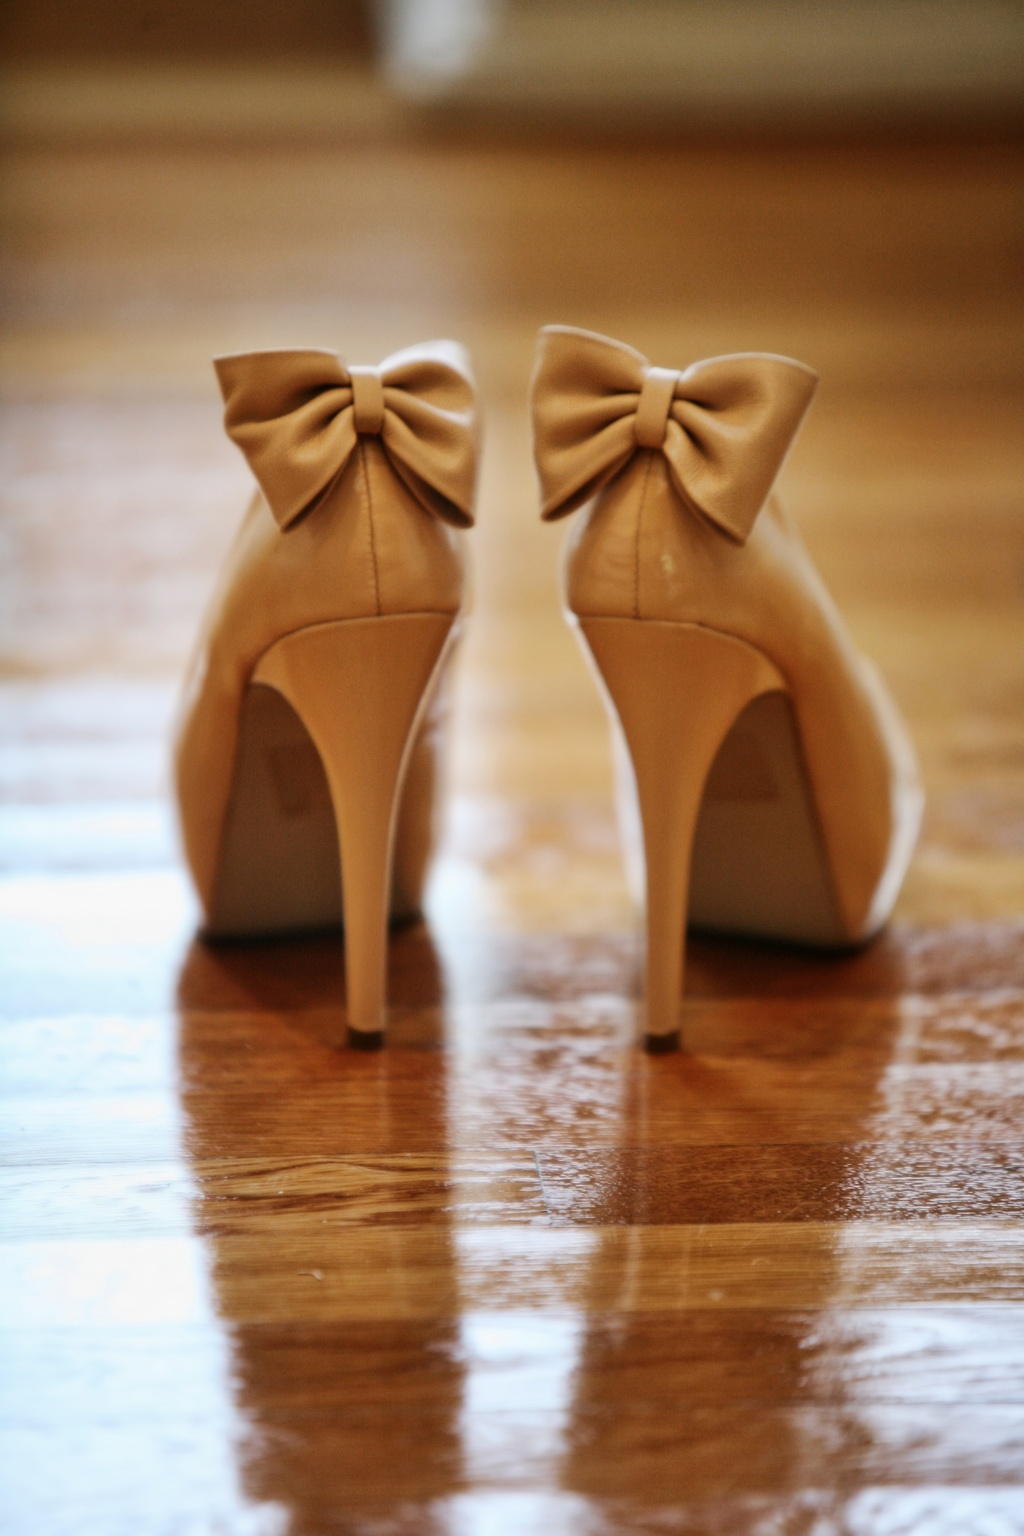 Personalized-real-wedding-planning-inspiration-for-brides-wedding-shoes-with-bows.full